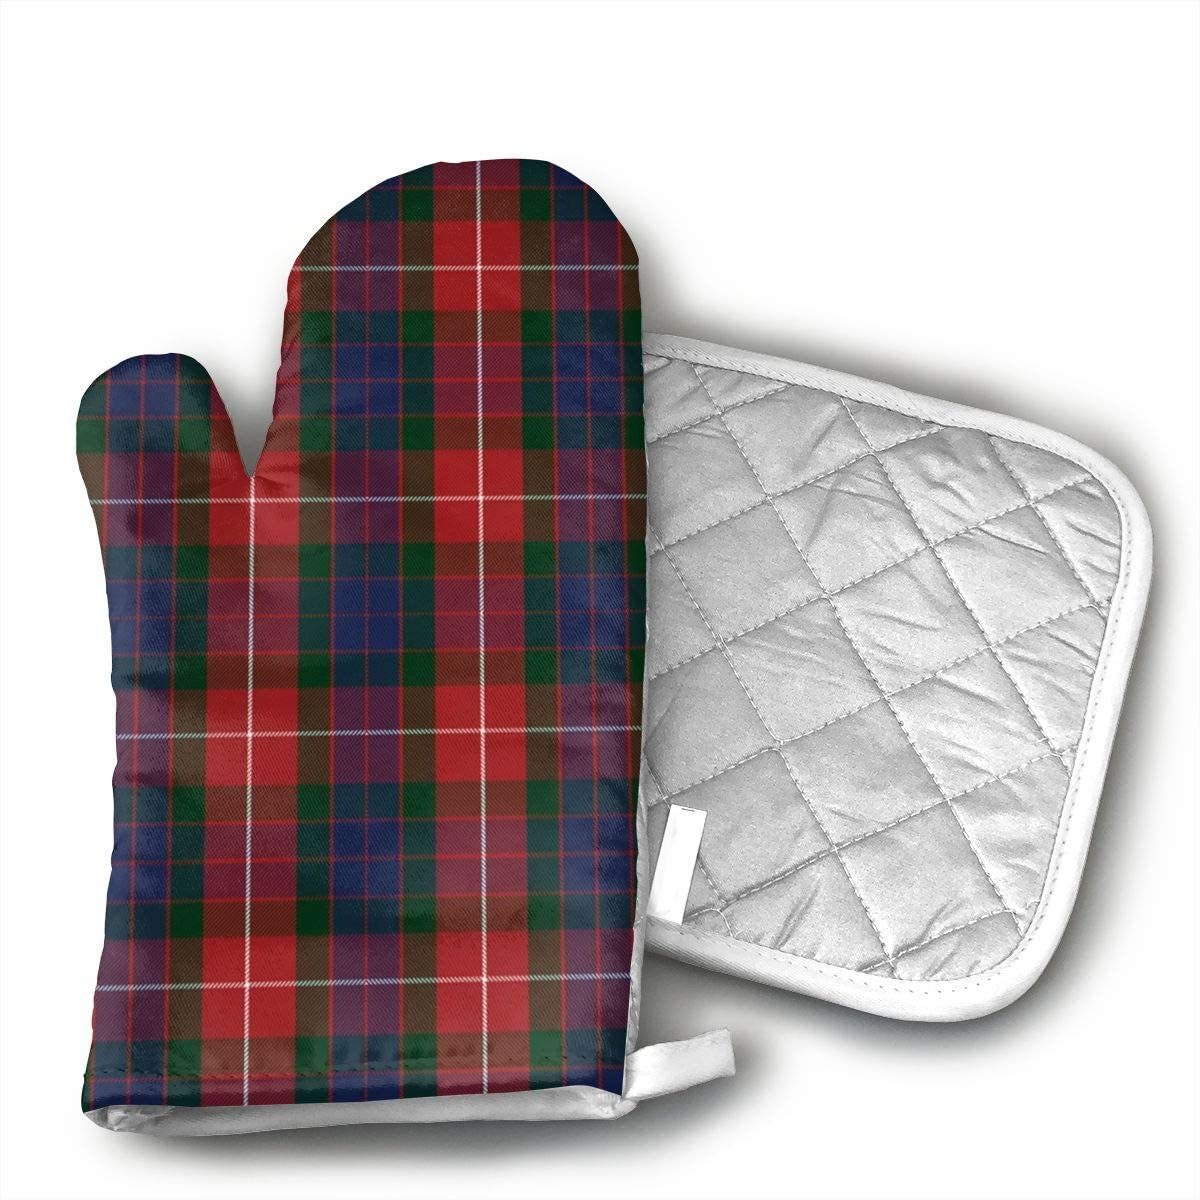 antcreptson Fraser Red Tartan Polyester Set of Oven Mitt and Pot Holder for BBQ   Cooking   Baking   Grilling   Microwave   Barbecue